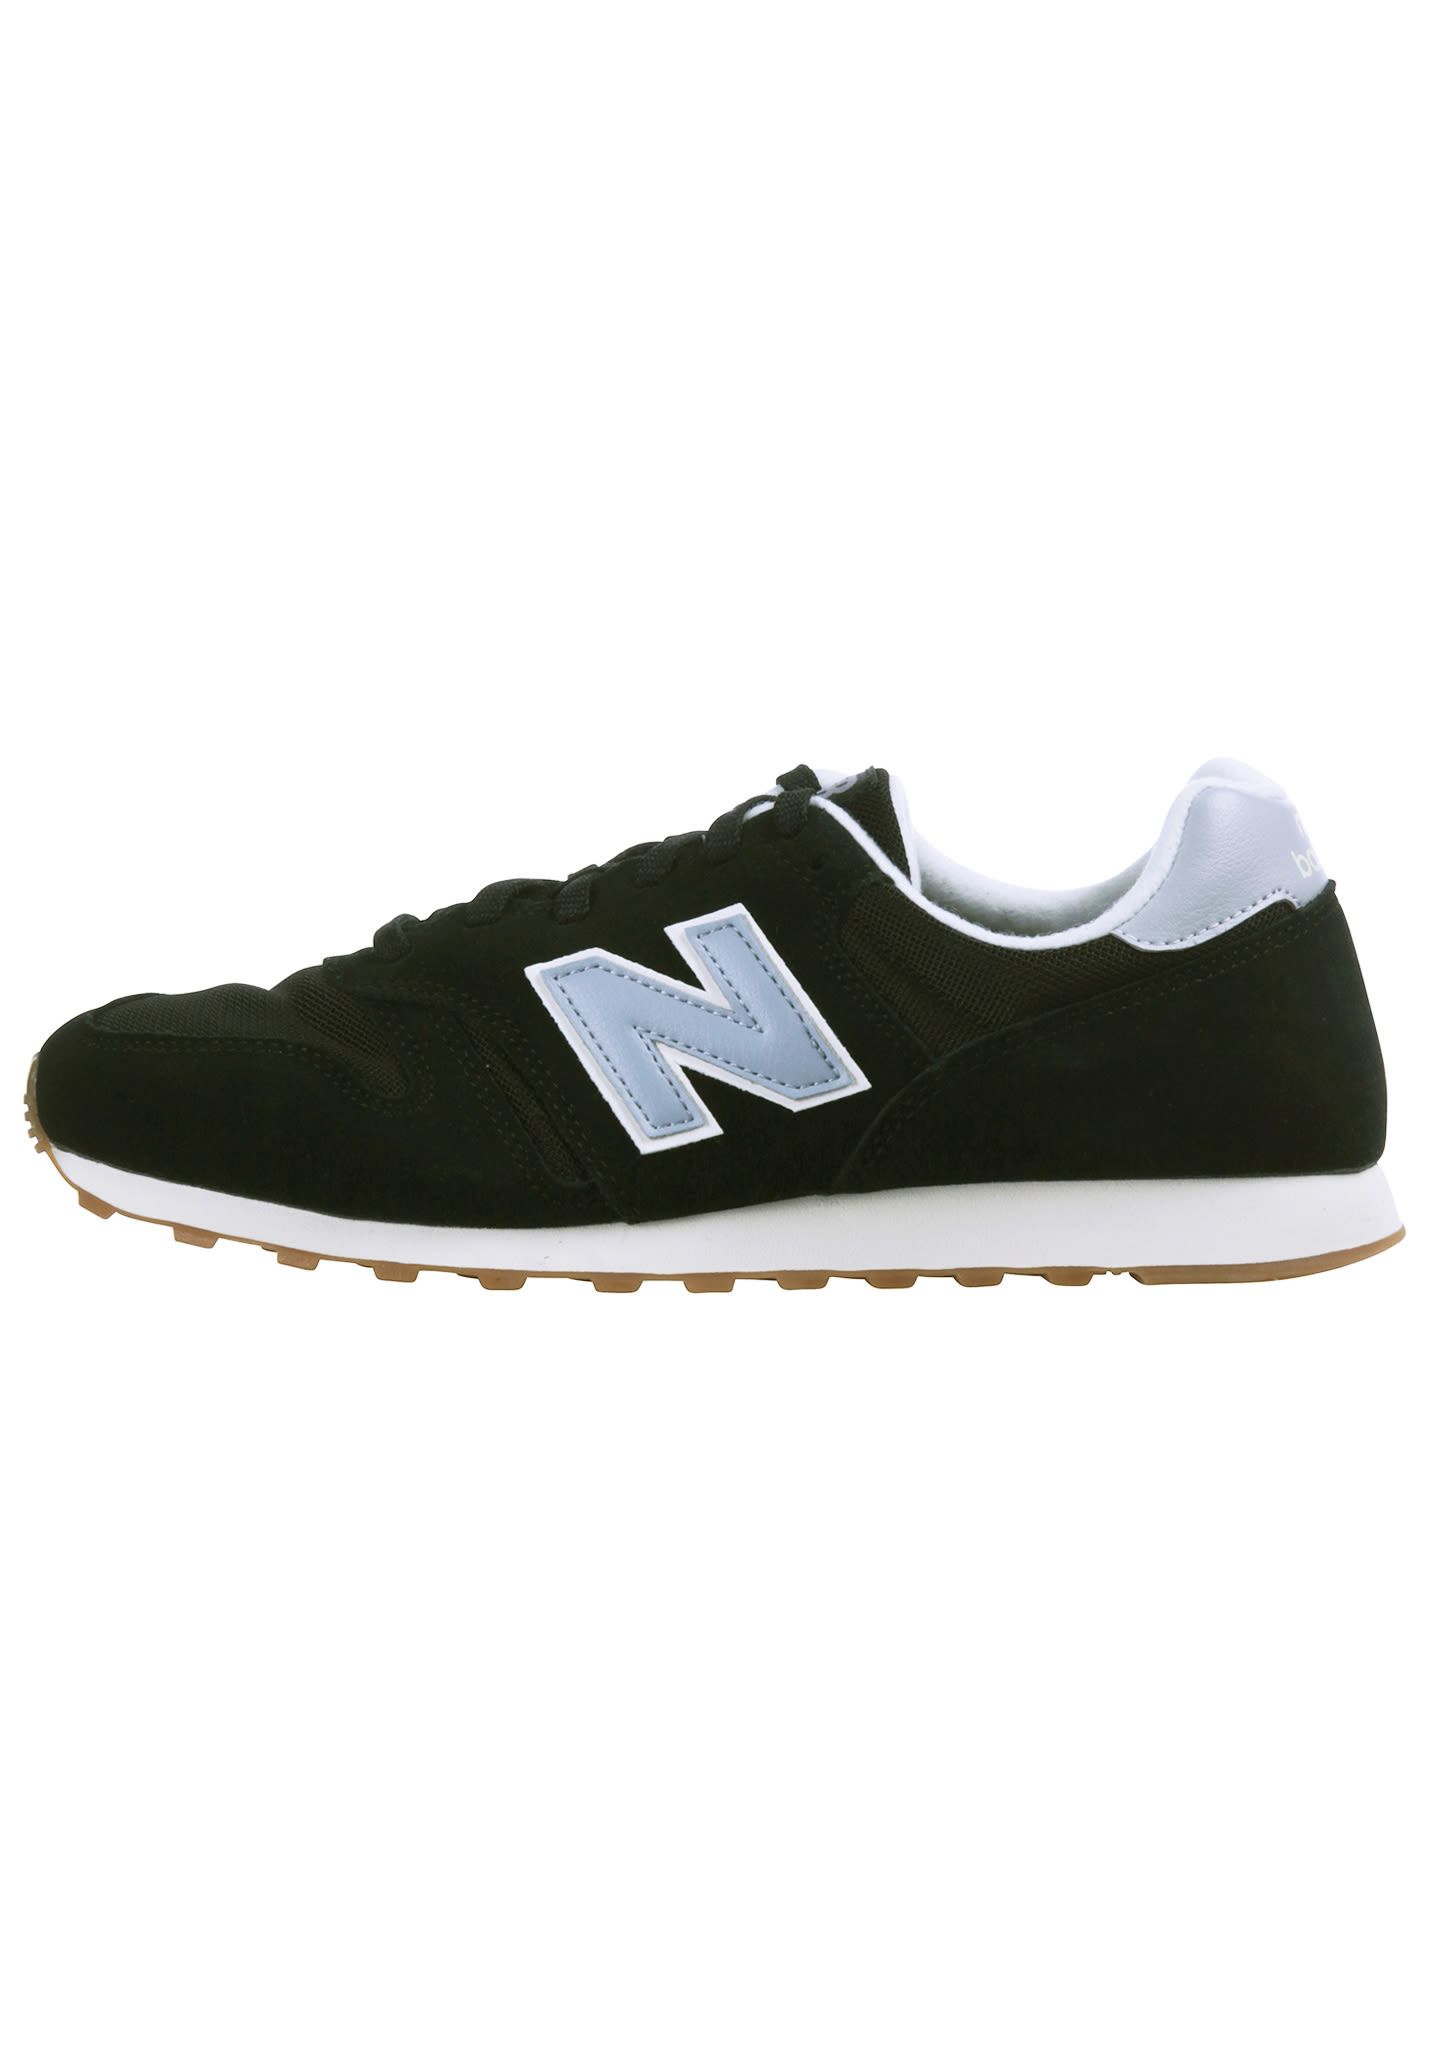 NEW Balance ML 373 D KBG Black Blue Scarpe Sneaker Nero Blu